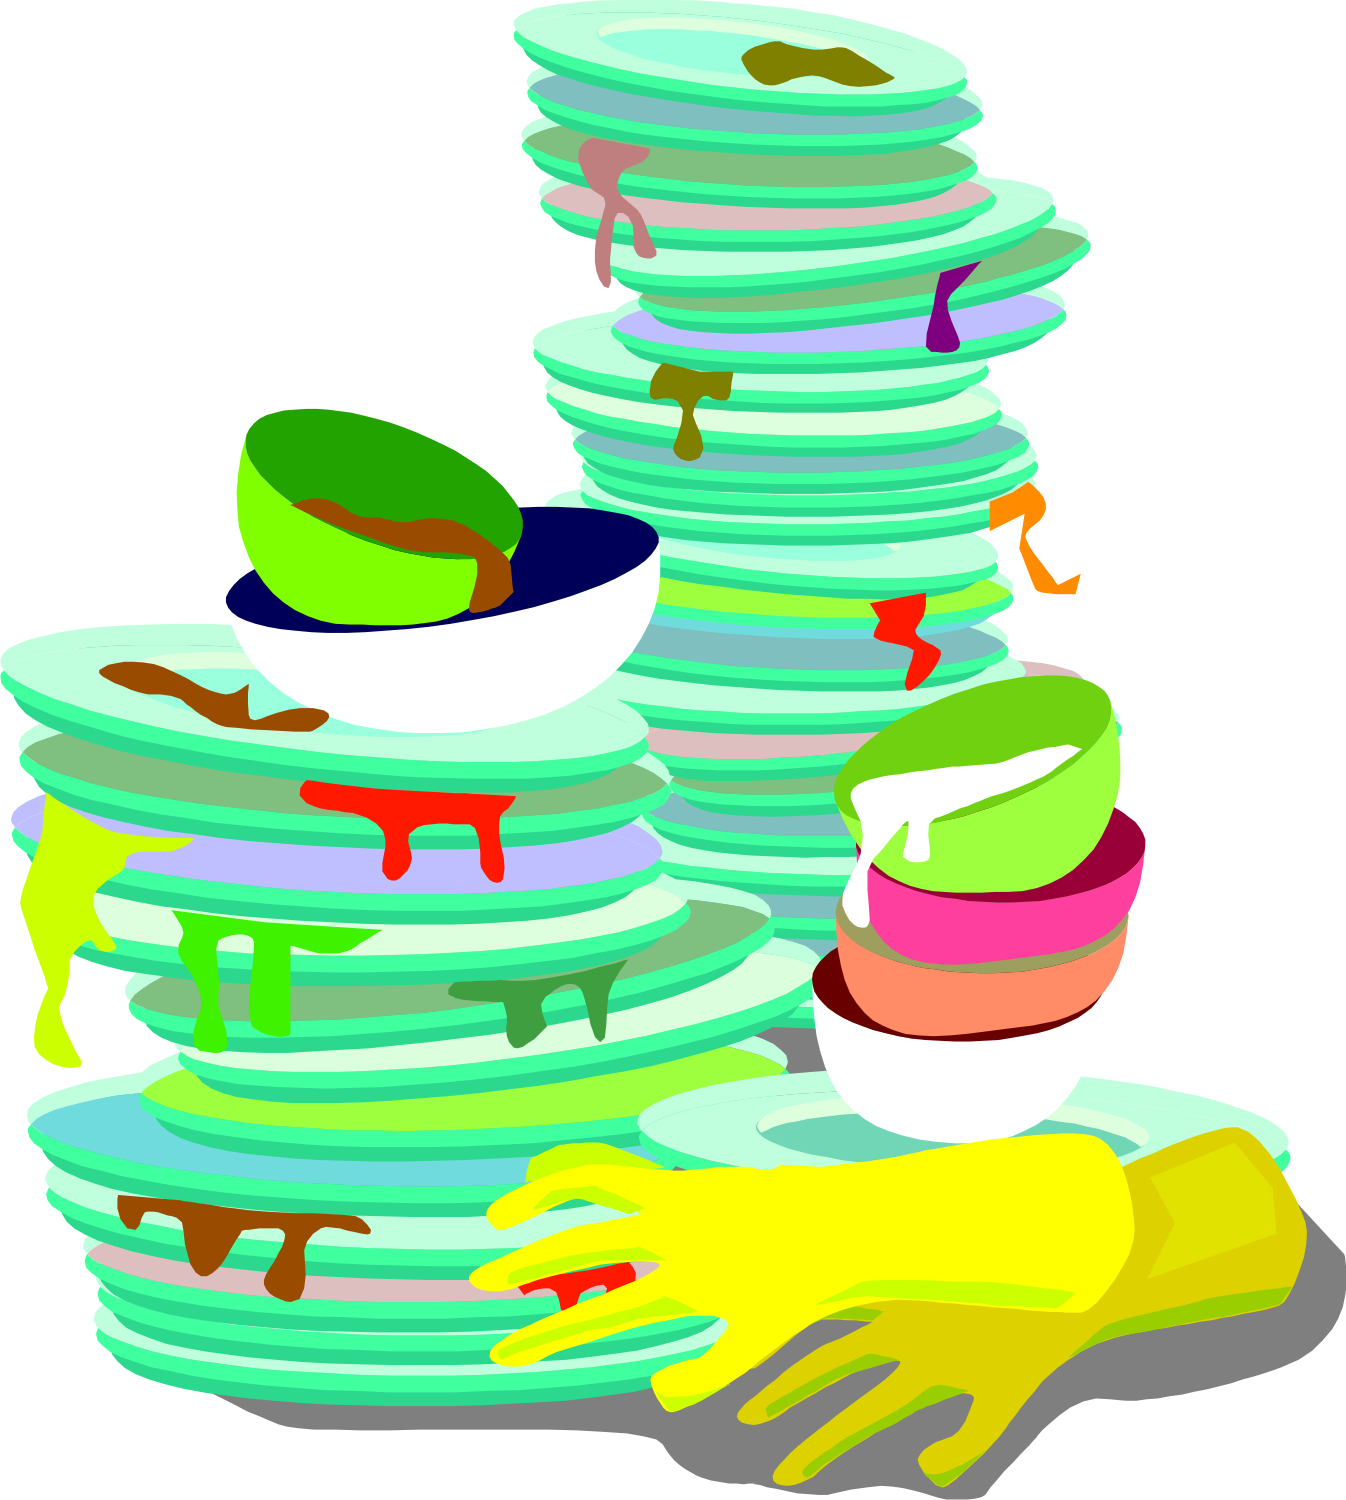 Dirty dishes clipart free graphic black and white stock Free Dirty Dishes Cliparts, Download Free Clip Art, Free Clip Art on ... graphic black and white stock